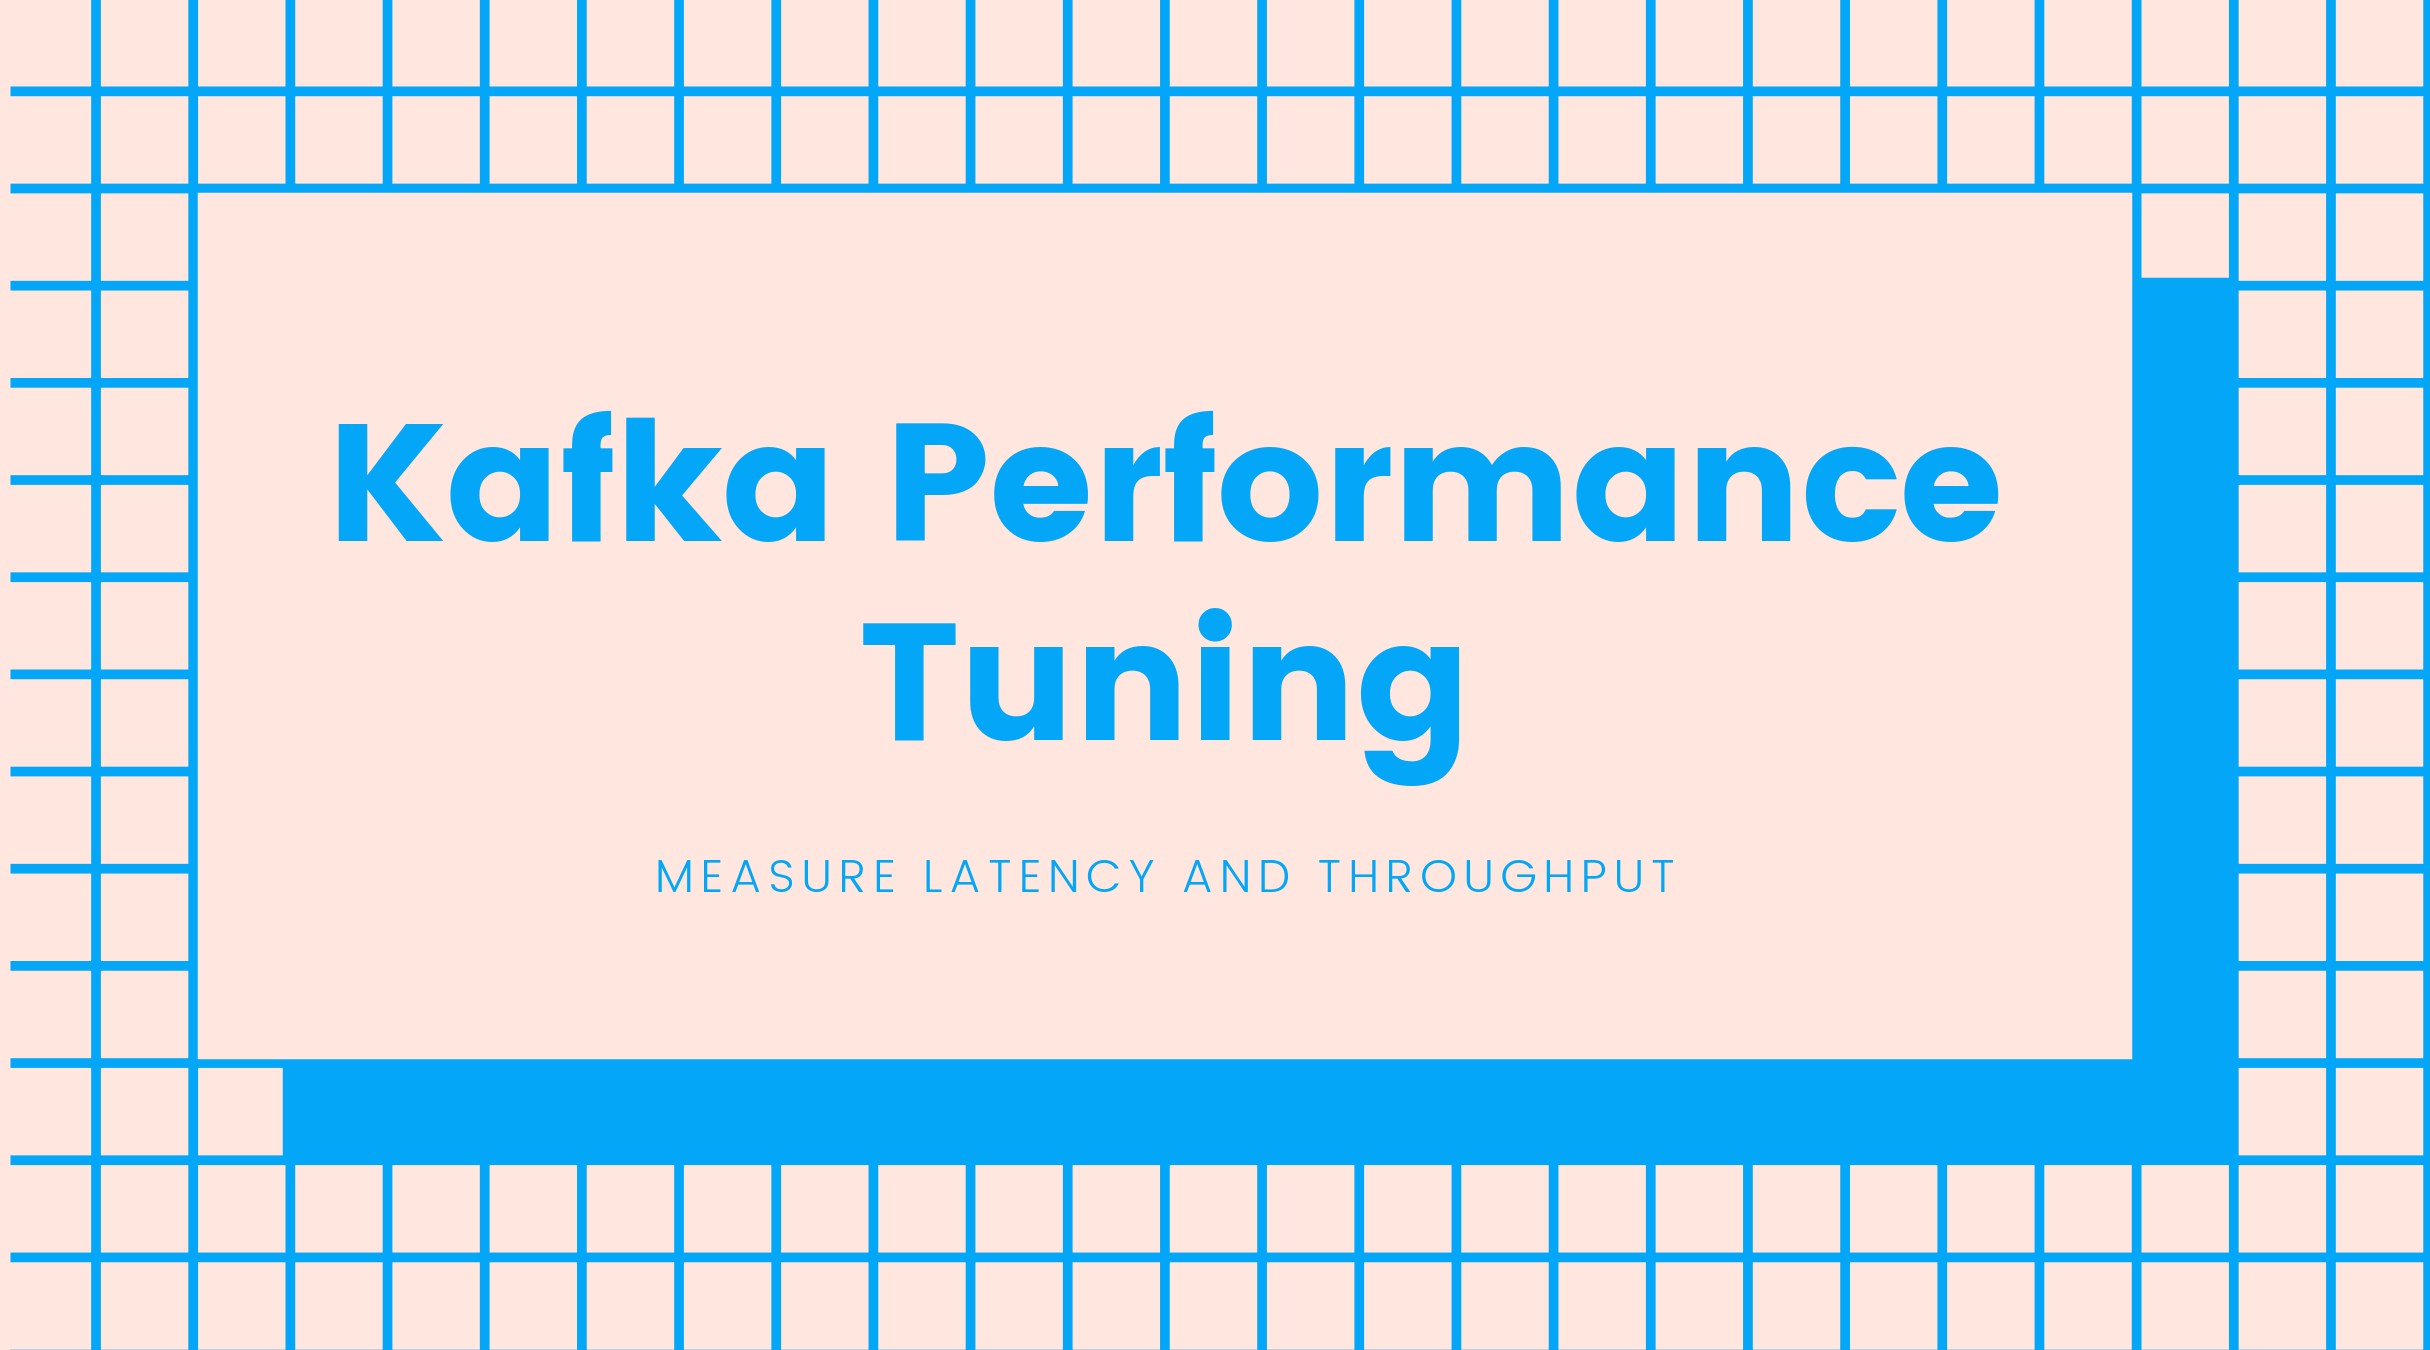 Kafka Performance Tuning